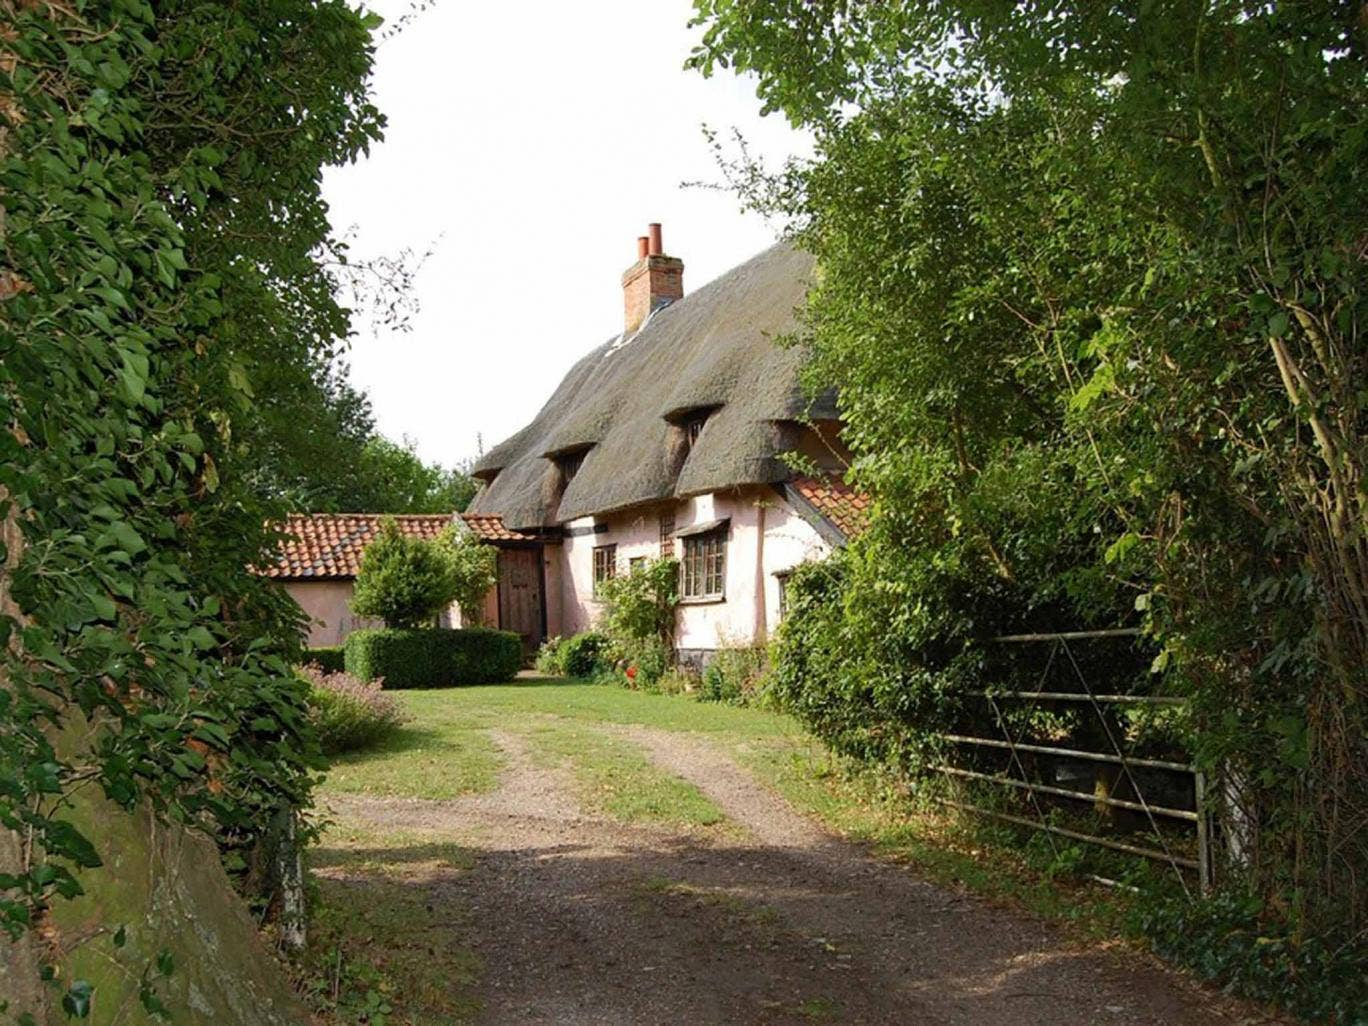 Four bedroom detached house for sale, Fen Road, Thelnetham, Diss IP22. On with TW Gaze at a guide price of  £470,000.